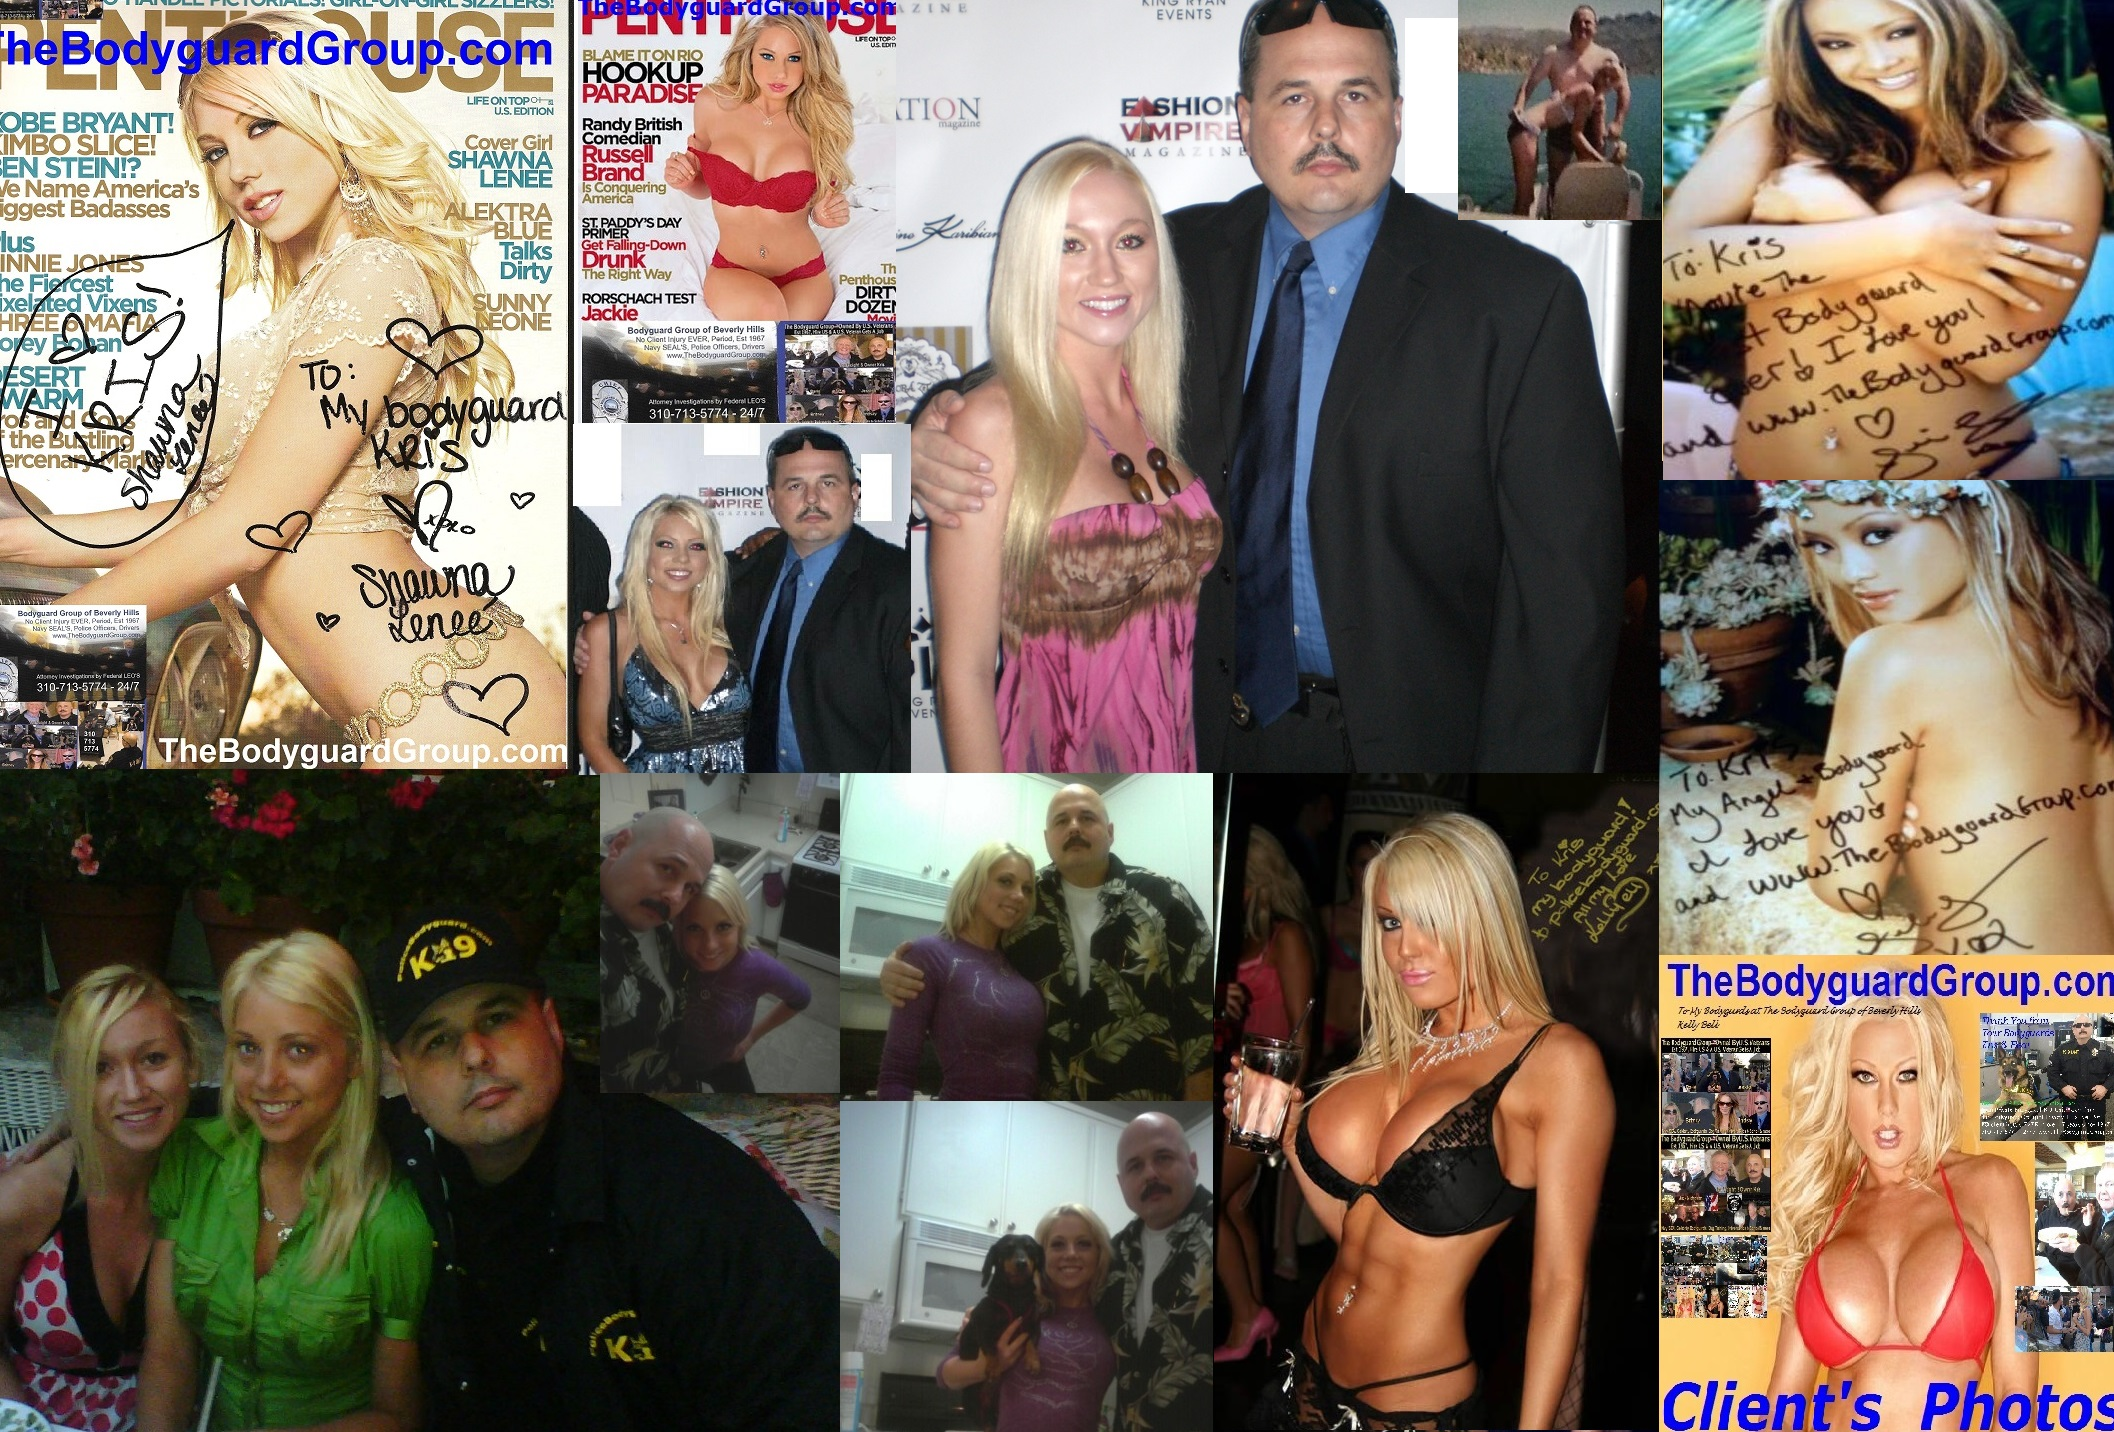 Famous celebrity bodyguard kris herzog girlfriends, The Bodyguard Group of Beverly Hills 90210, Los Angeles, Celebrity Bodyguards for hire for hire